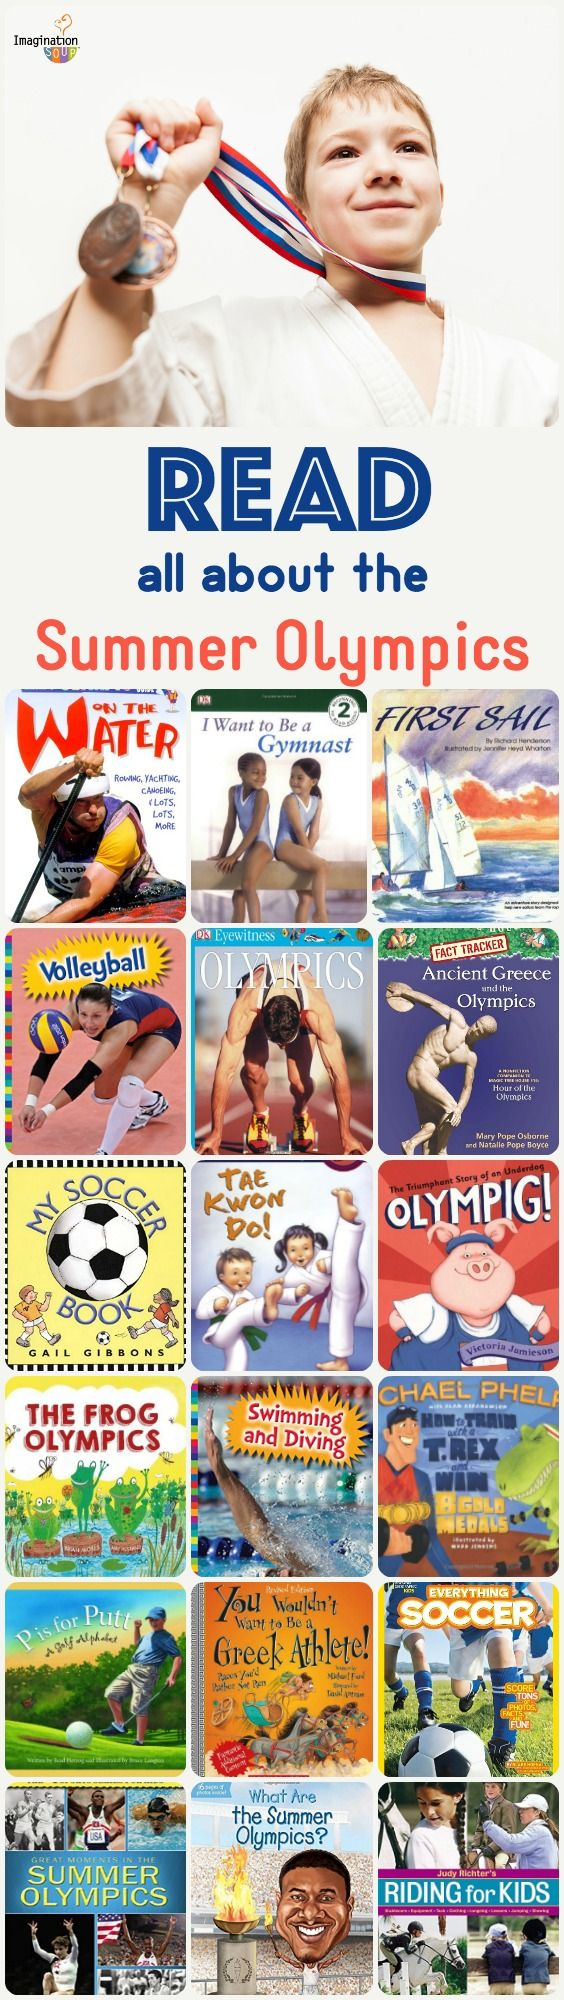 get ready for Rio with these children's books about the summer Olympics!